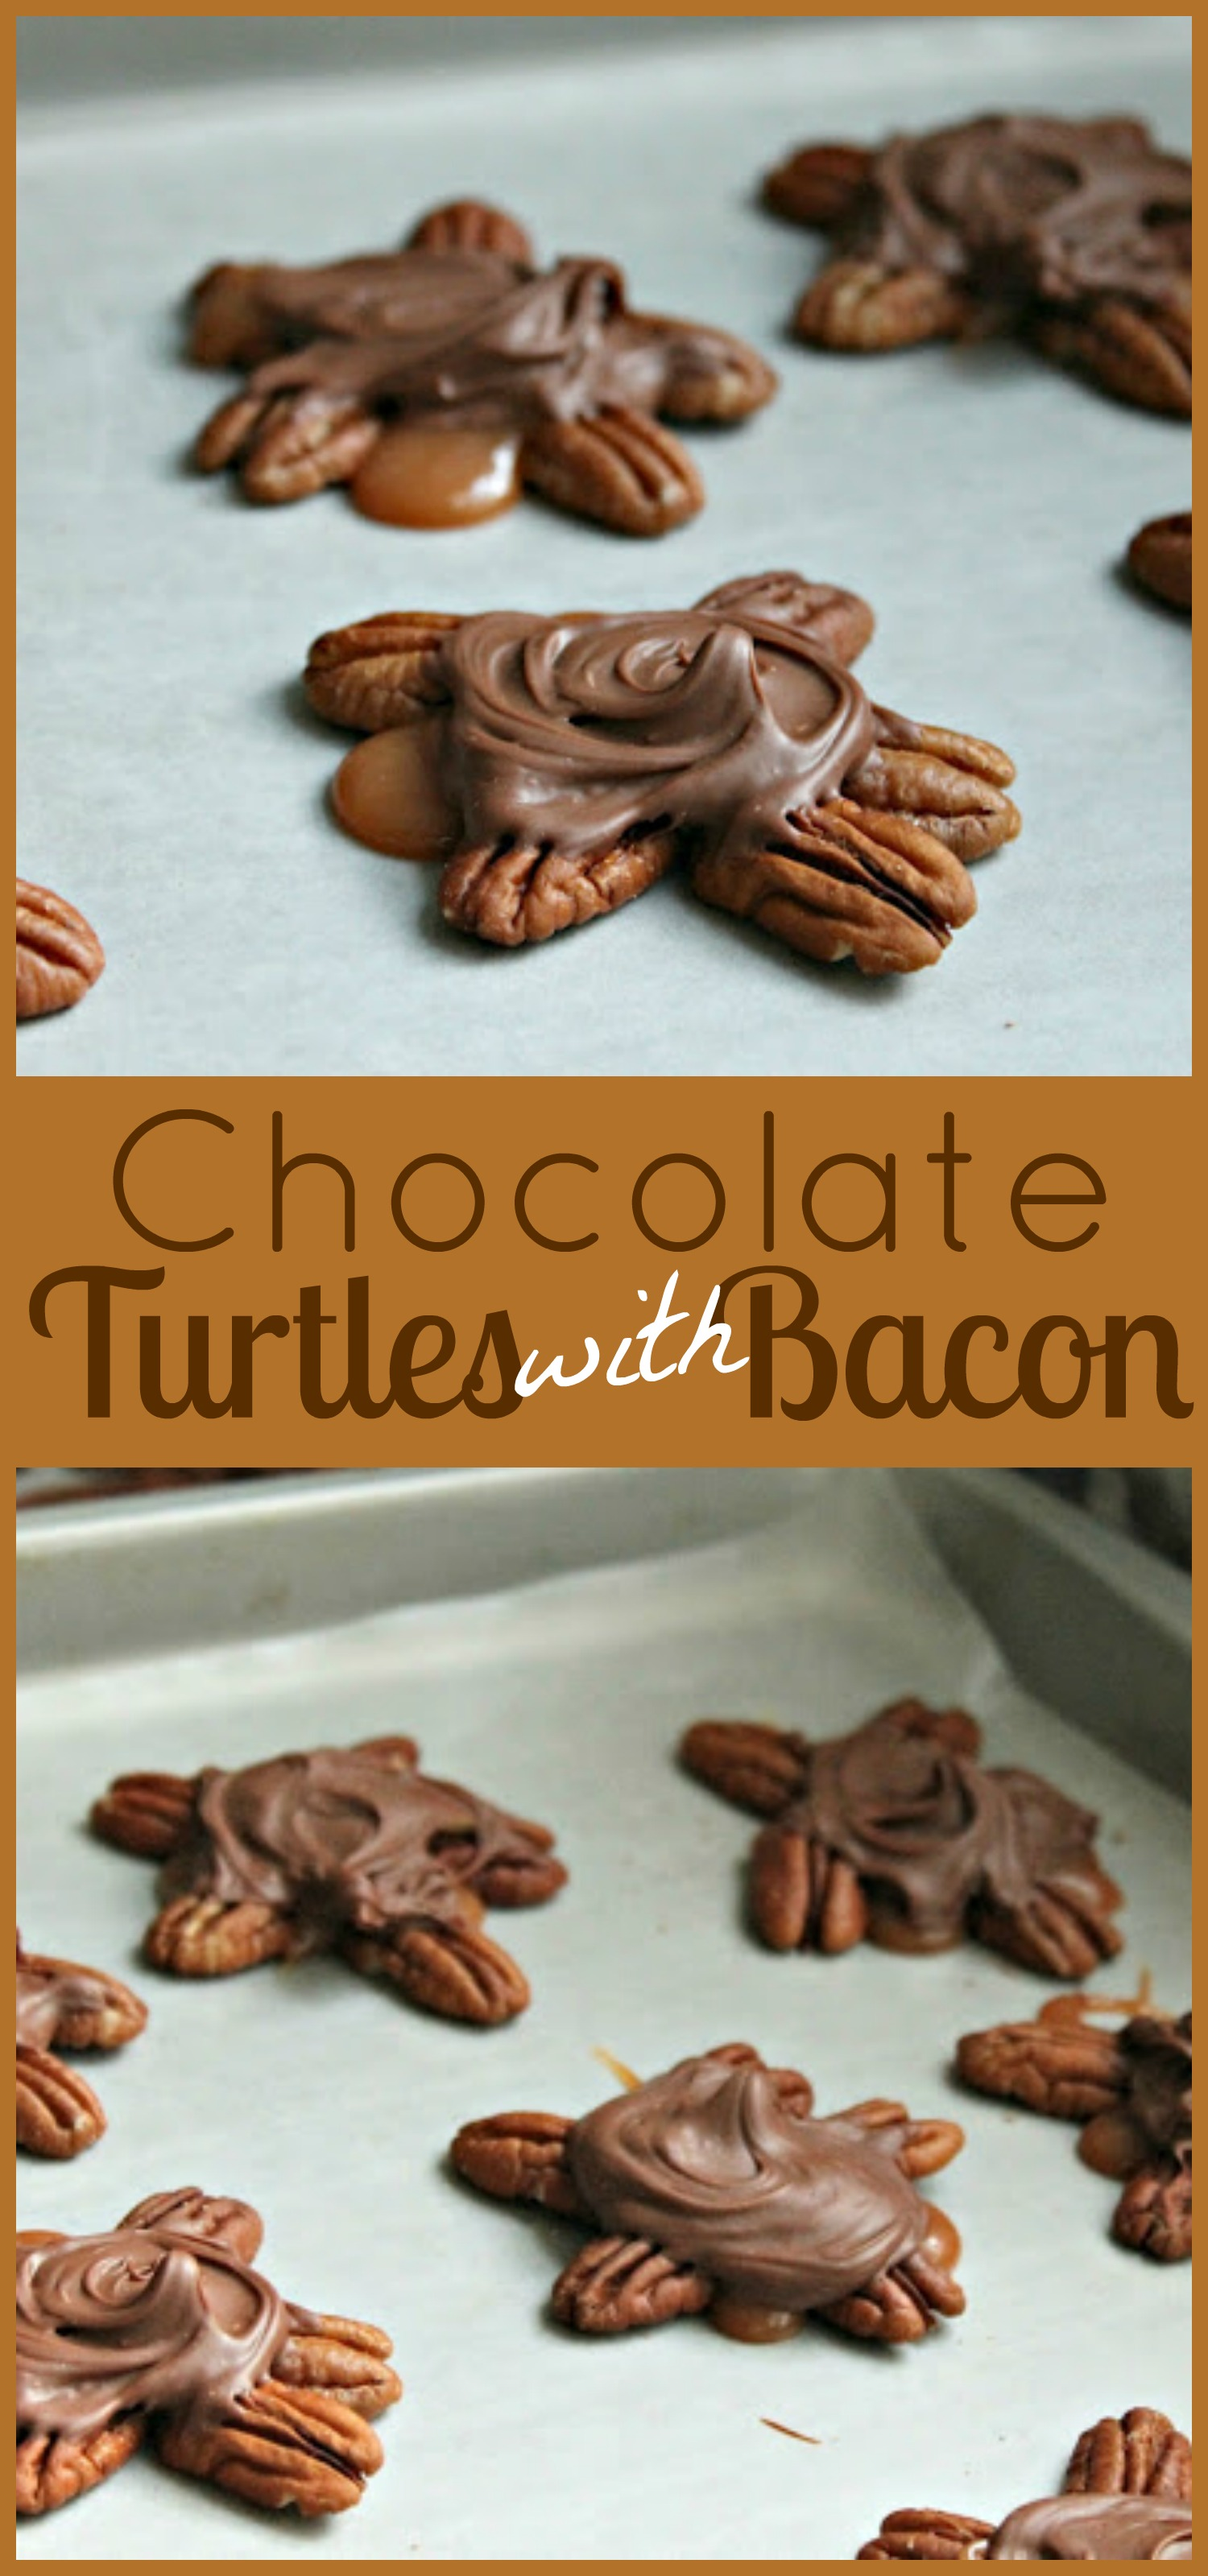 Chocolate-Covered Turtles with Bacon | CPA: Certified ...